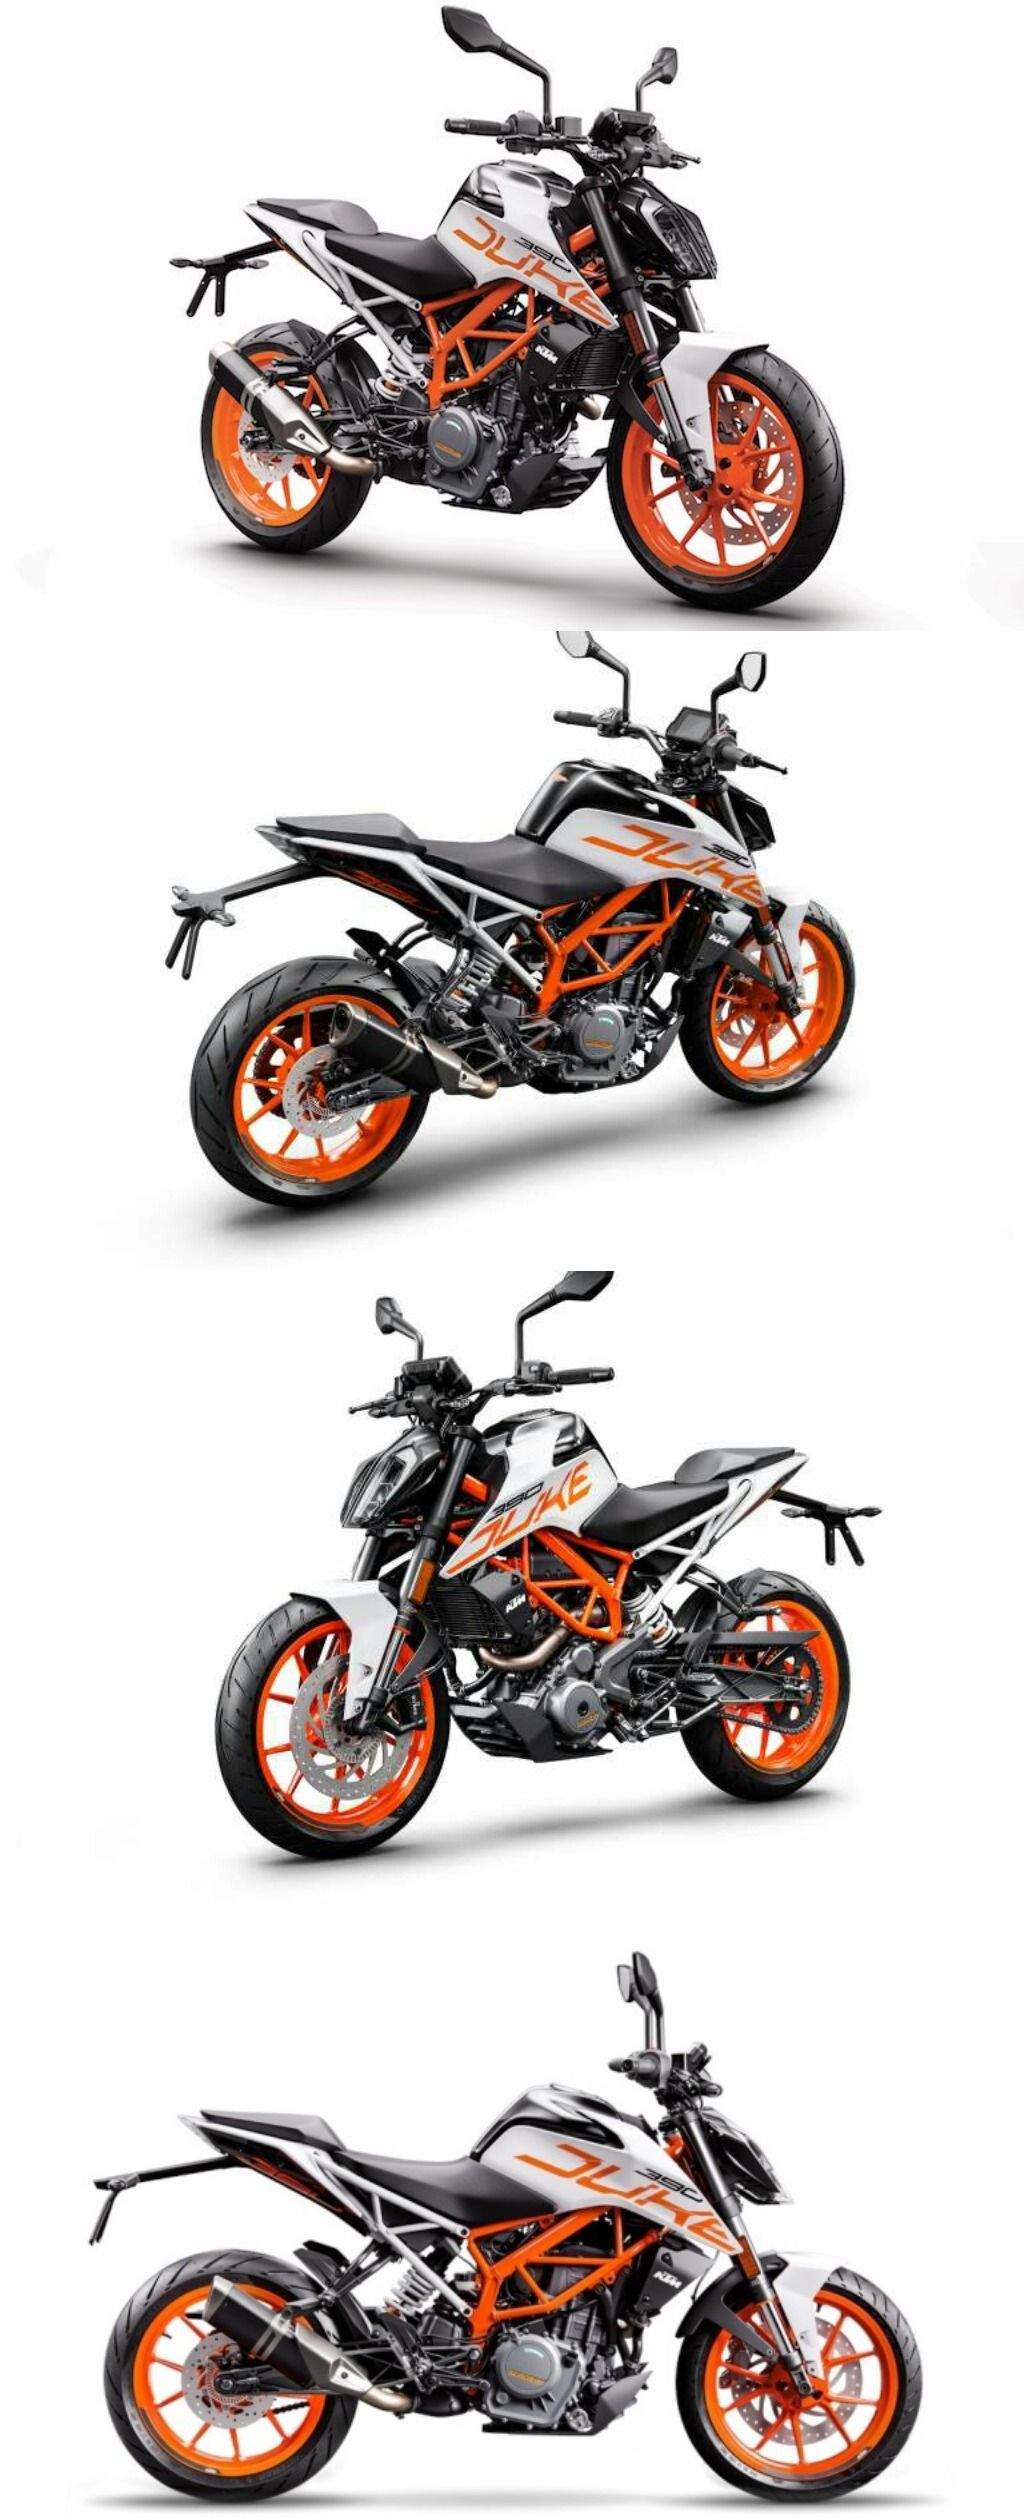 2018 Ktm Duke 390 Available To Purchase In White In India Ktm